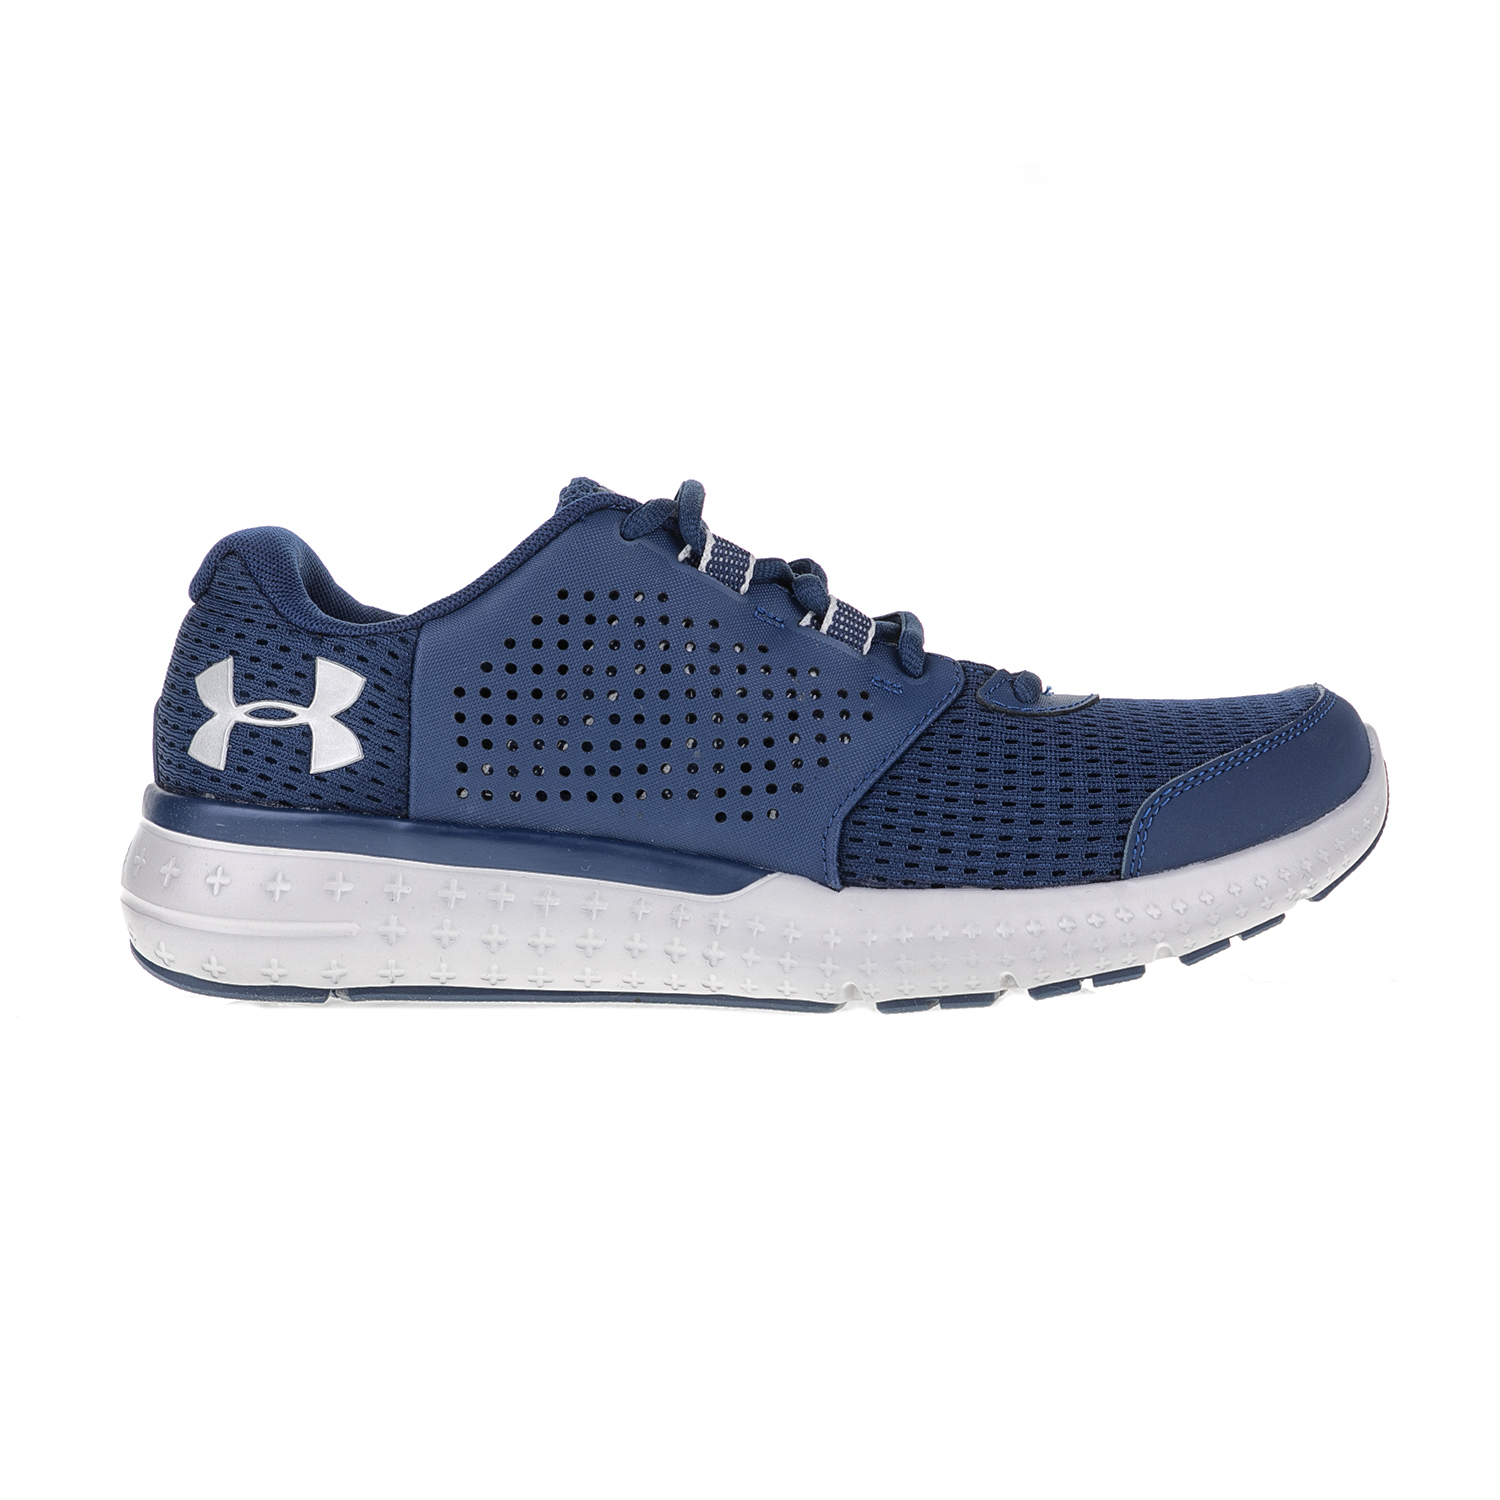 UNDER ARMOUR – Ανδρικά αθλητικά παπούτσια UNDER ARMOUR Micro G Fuel RN μπλε